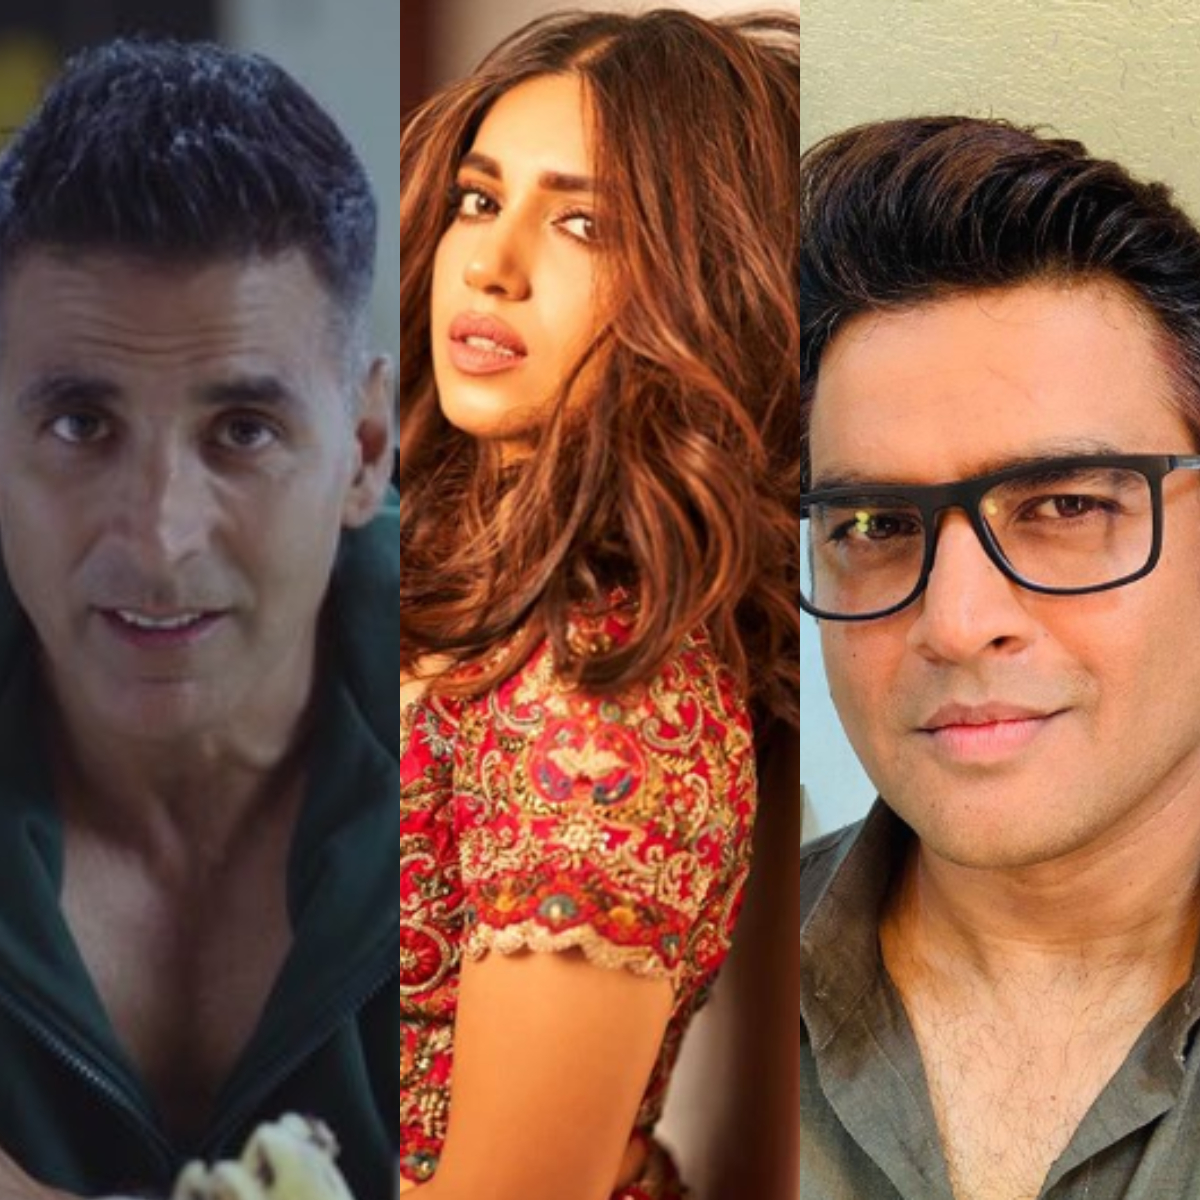 Akshay Kumar to be part of Hindi remake of Bhaagamathie starring Bhumi Pednekar & R Madhavan? Find out